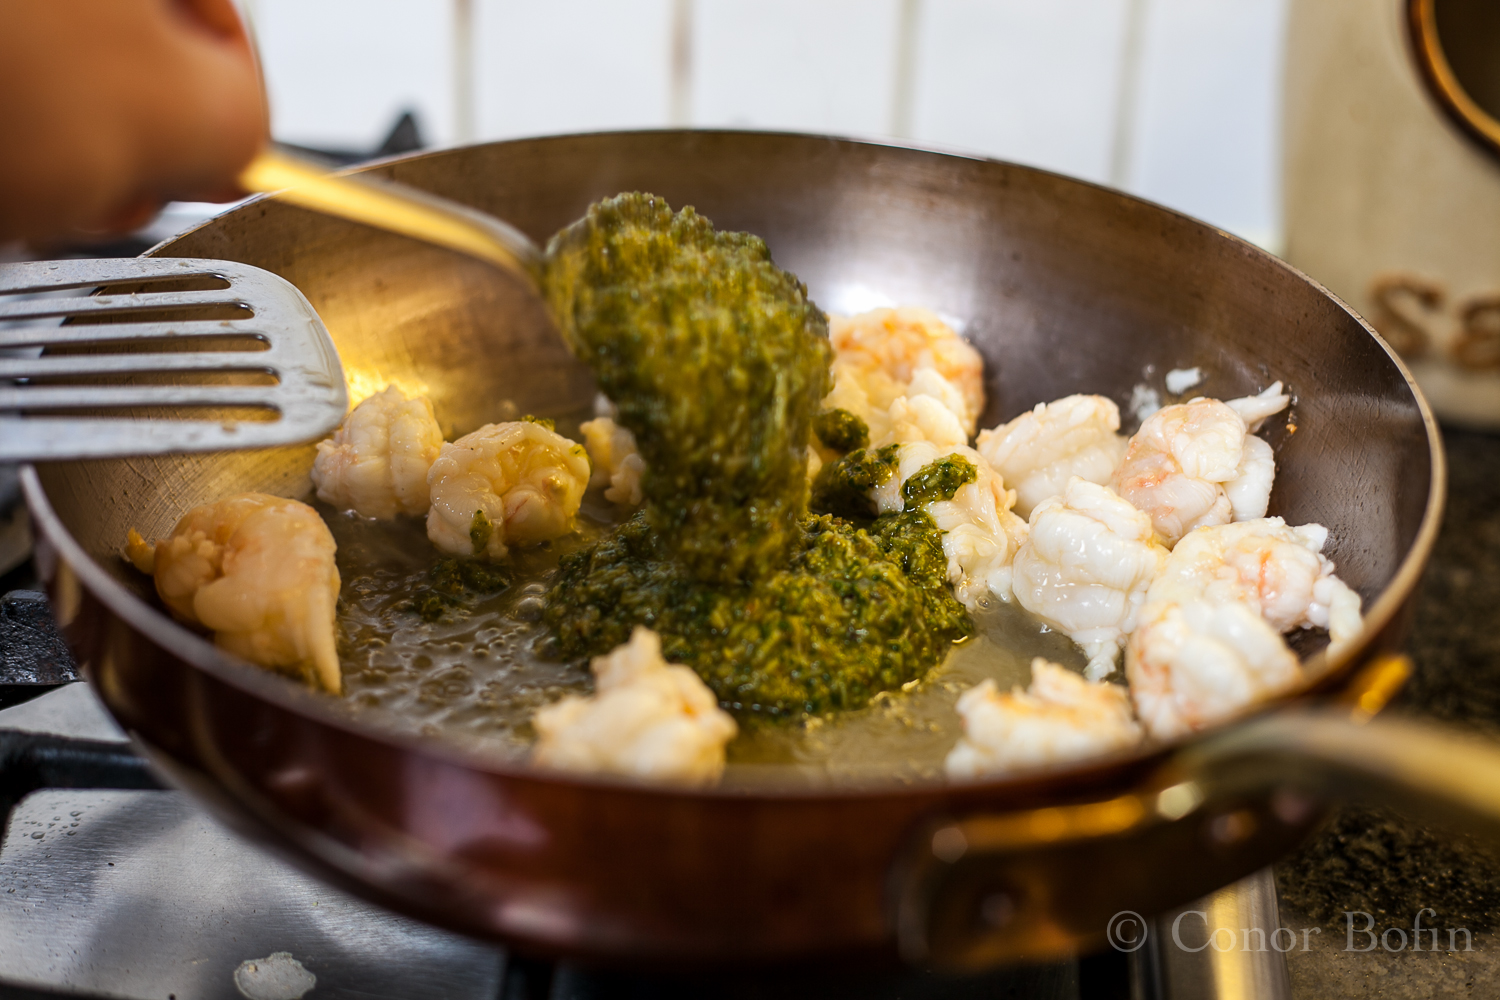 The aroma from the pesto and prawns is sensational.